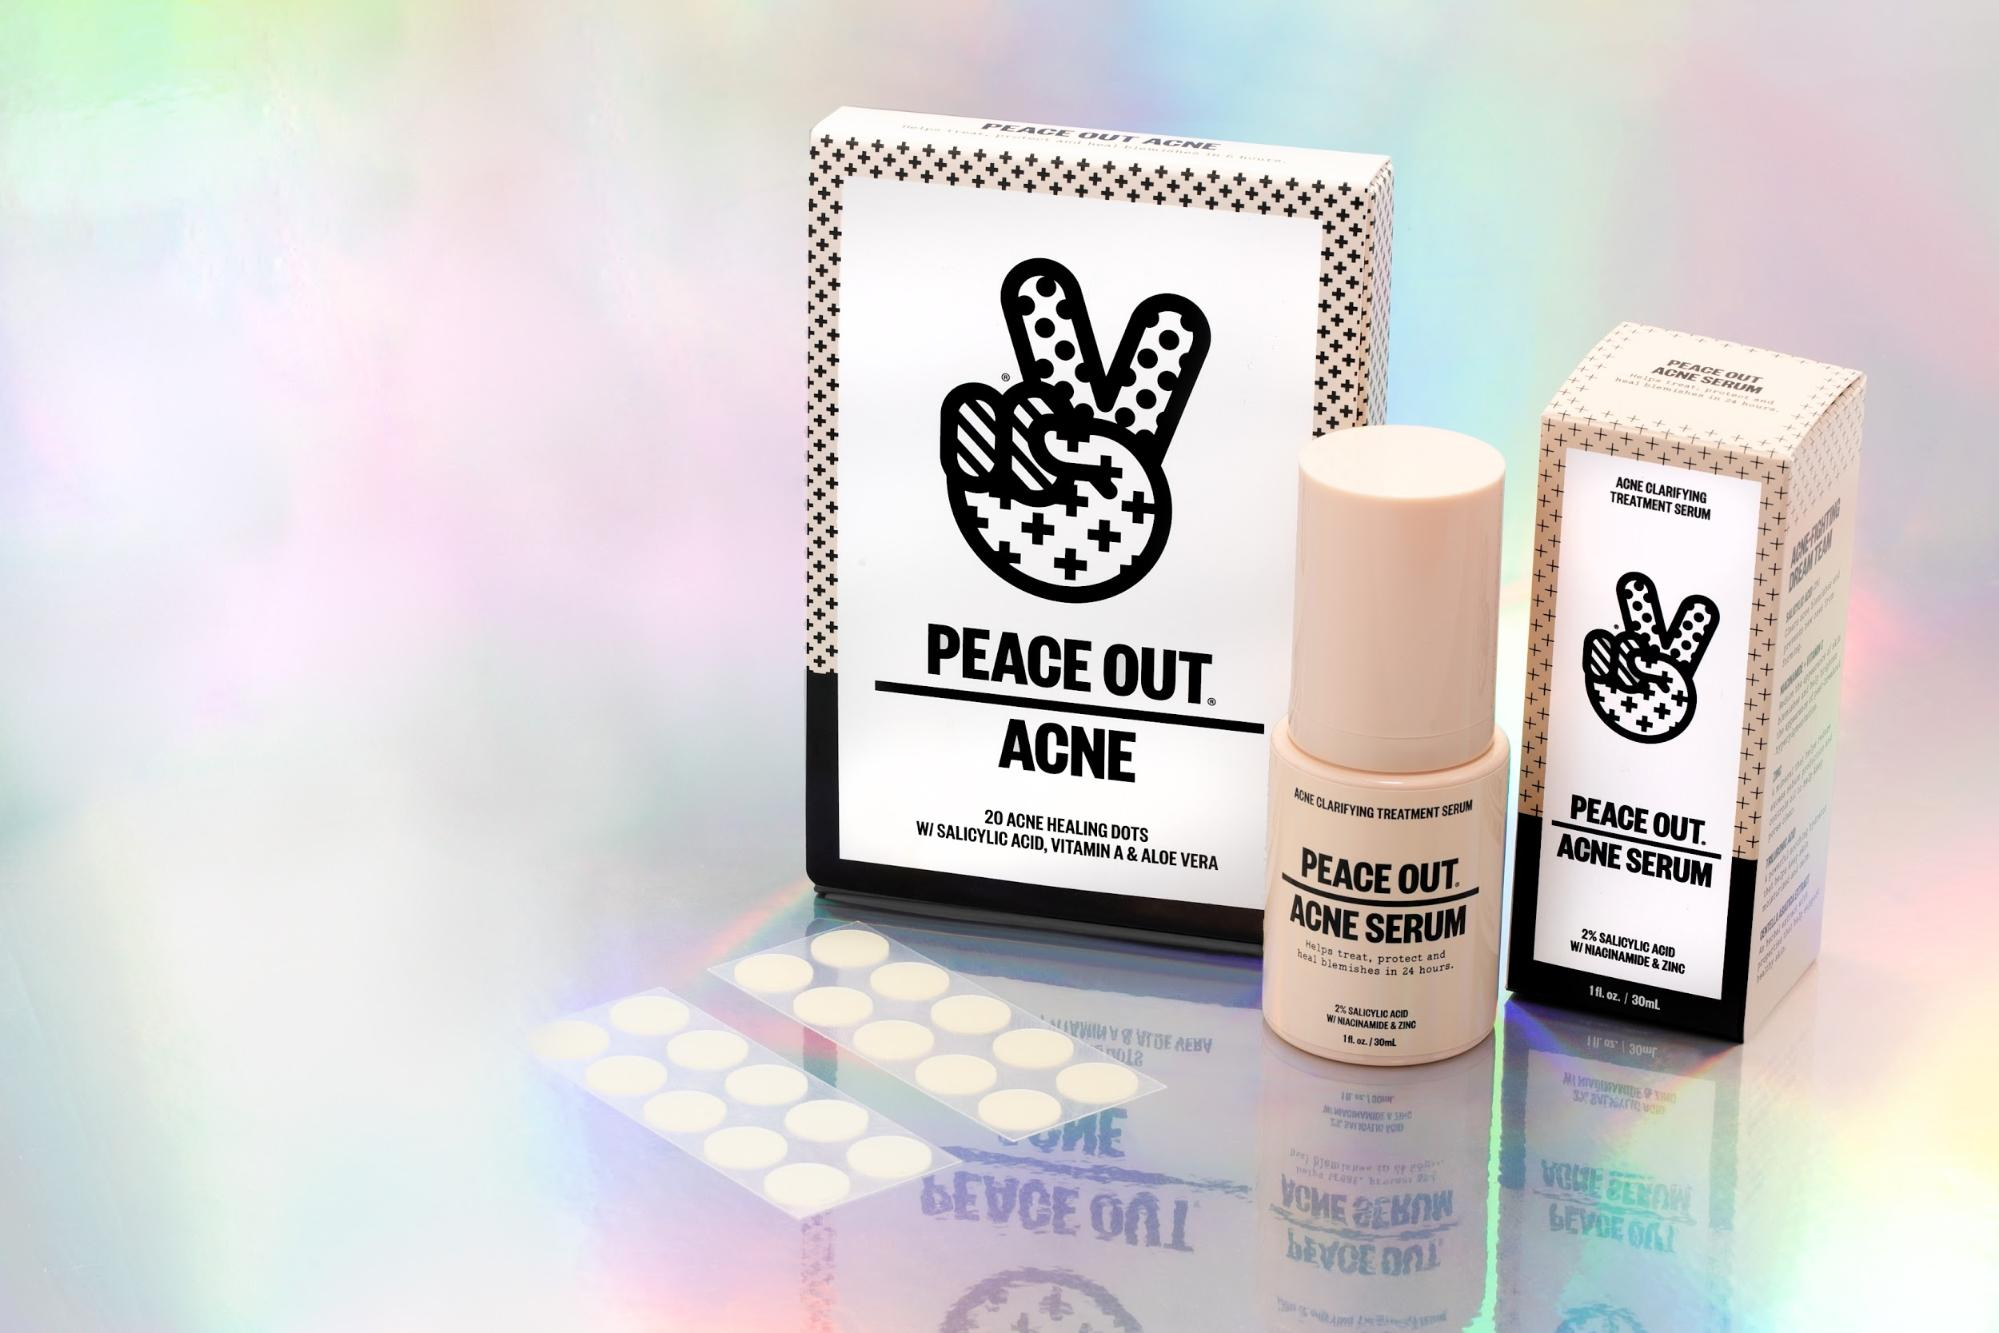 The Acne Healing Dots and Acne Serum from Peace Out Skincare against a holographic backdrop.